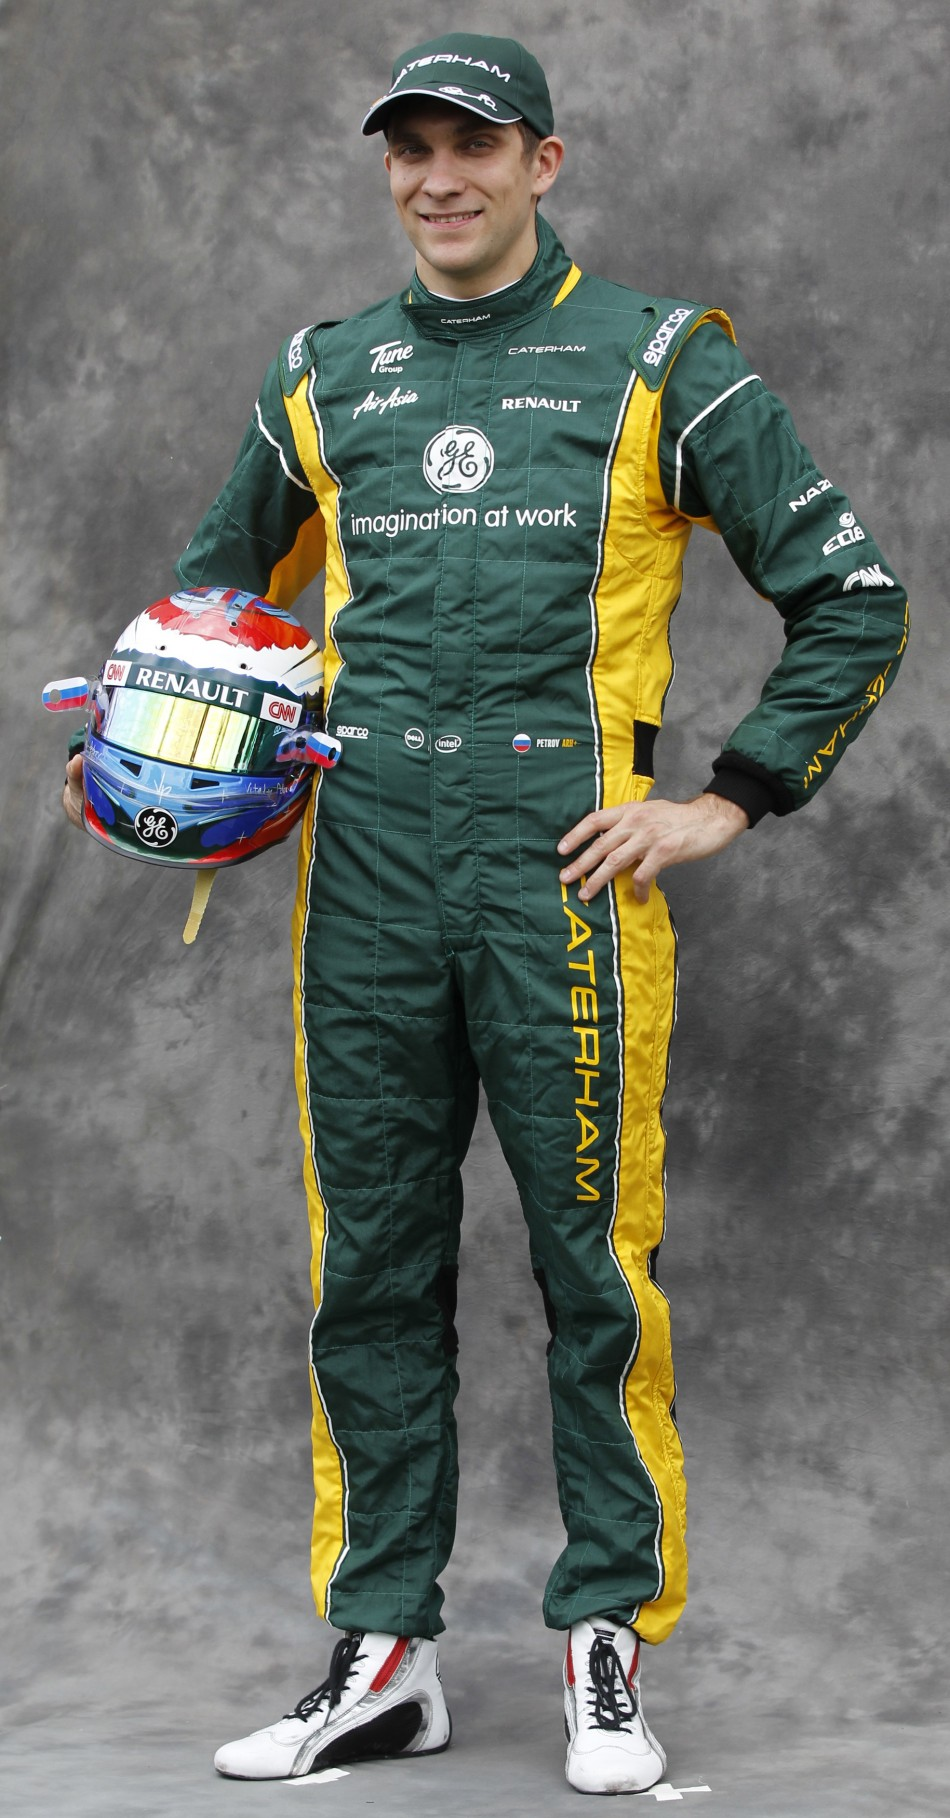 Renault Formula One driver Petrov poses prior to the Australian F1 Grand Prix at the Albert Park circuit in Melbourne